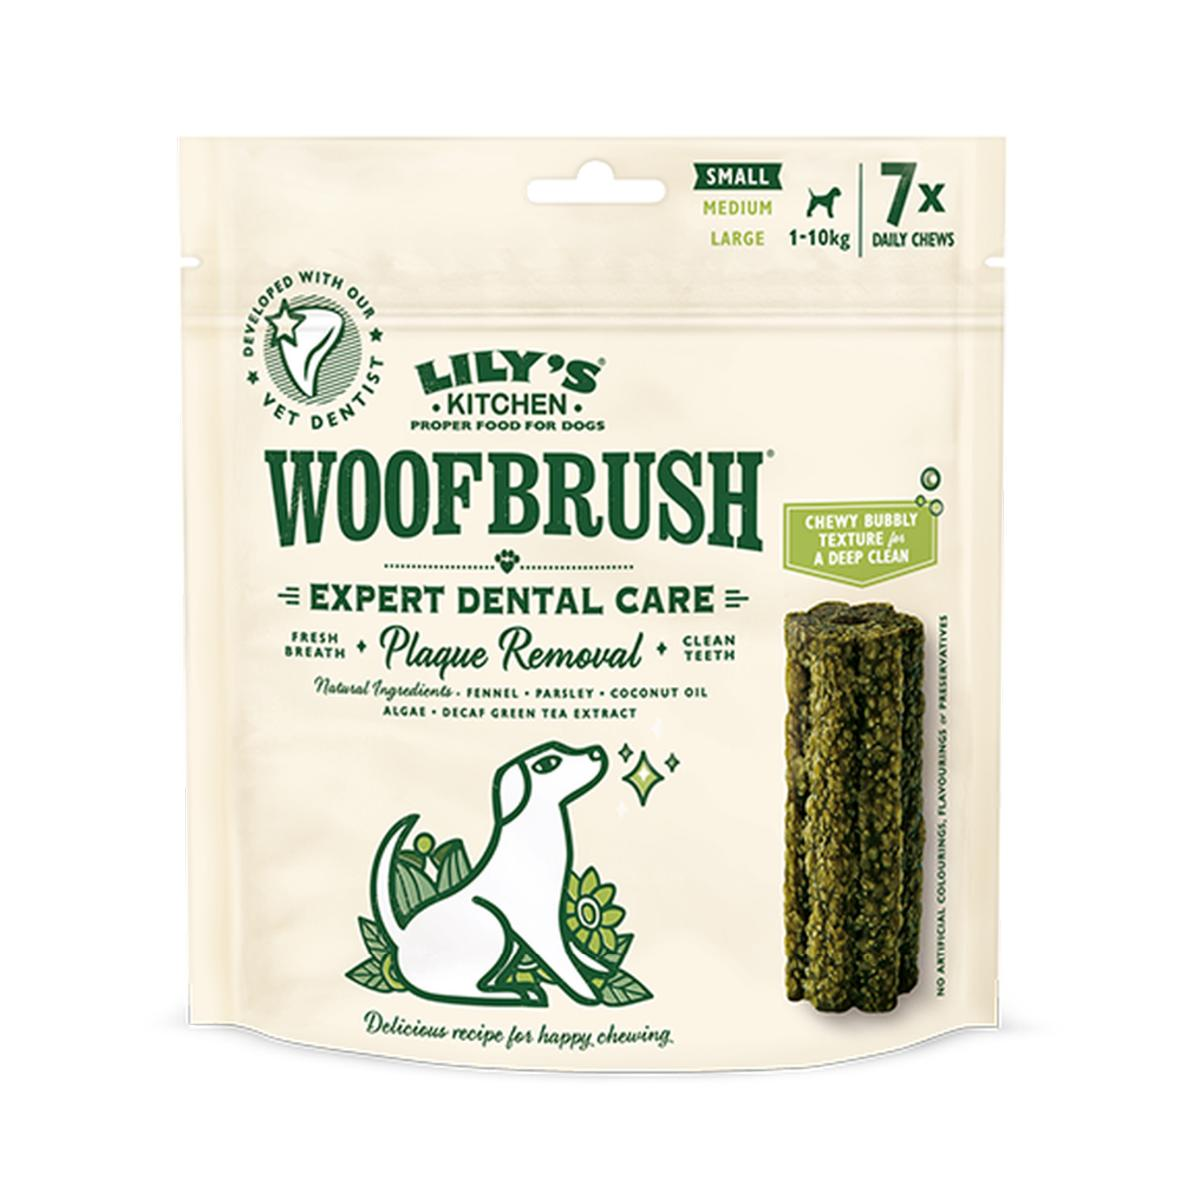 CLEARANCE Lilys Kitchen WoofBrush Daily Chews Small 1-10kg 7pcs